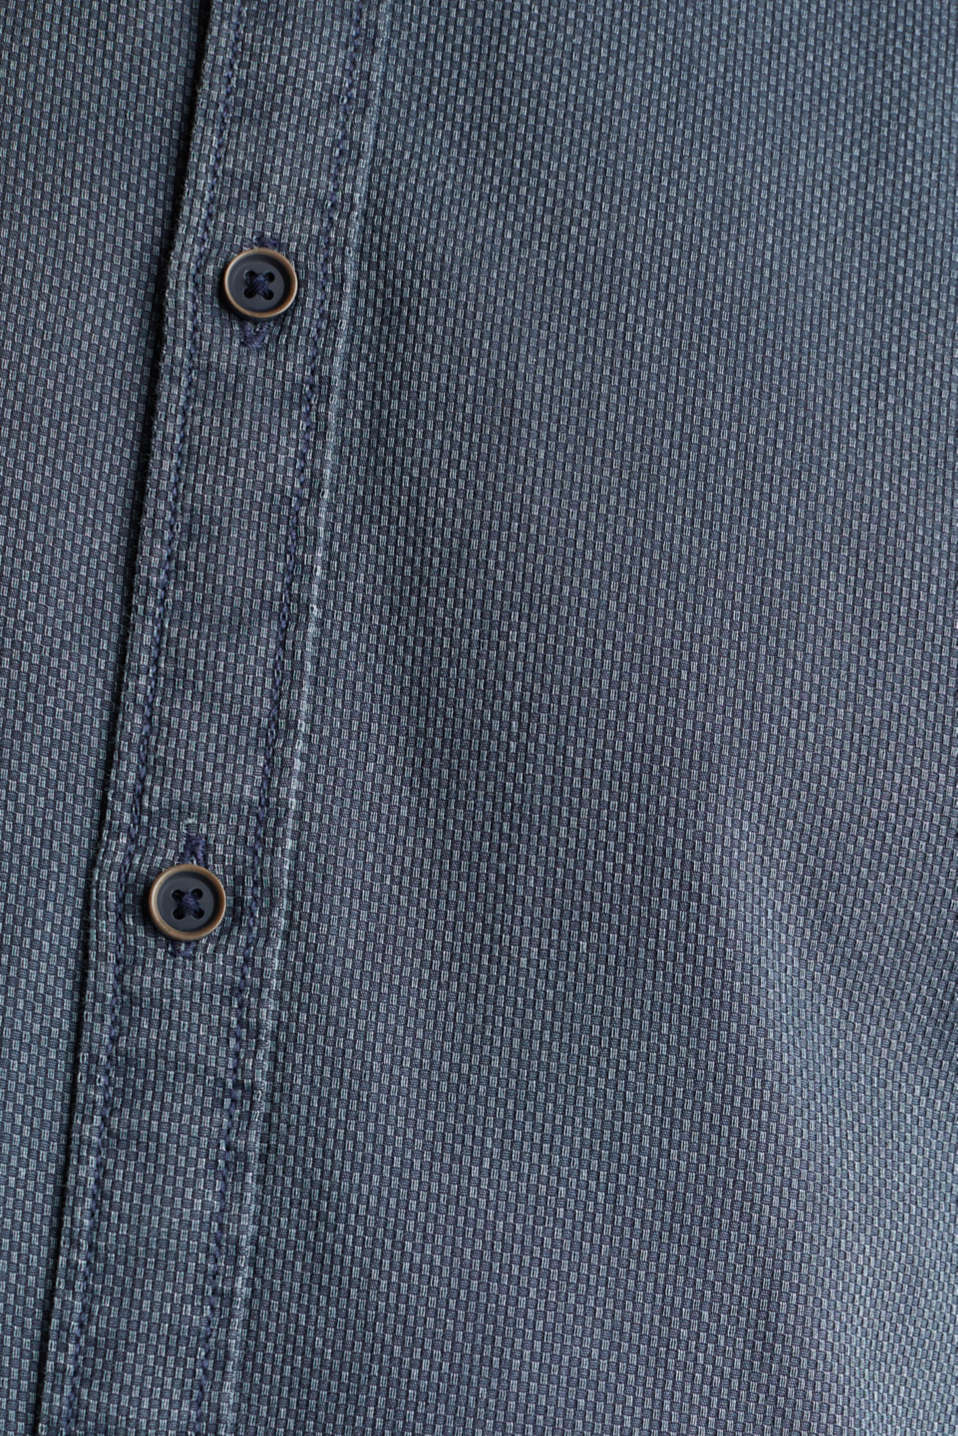 Shirt with a checked texture, 100% cotton, DARK BLUE 5, detail image number 4